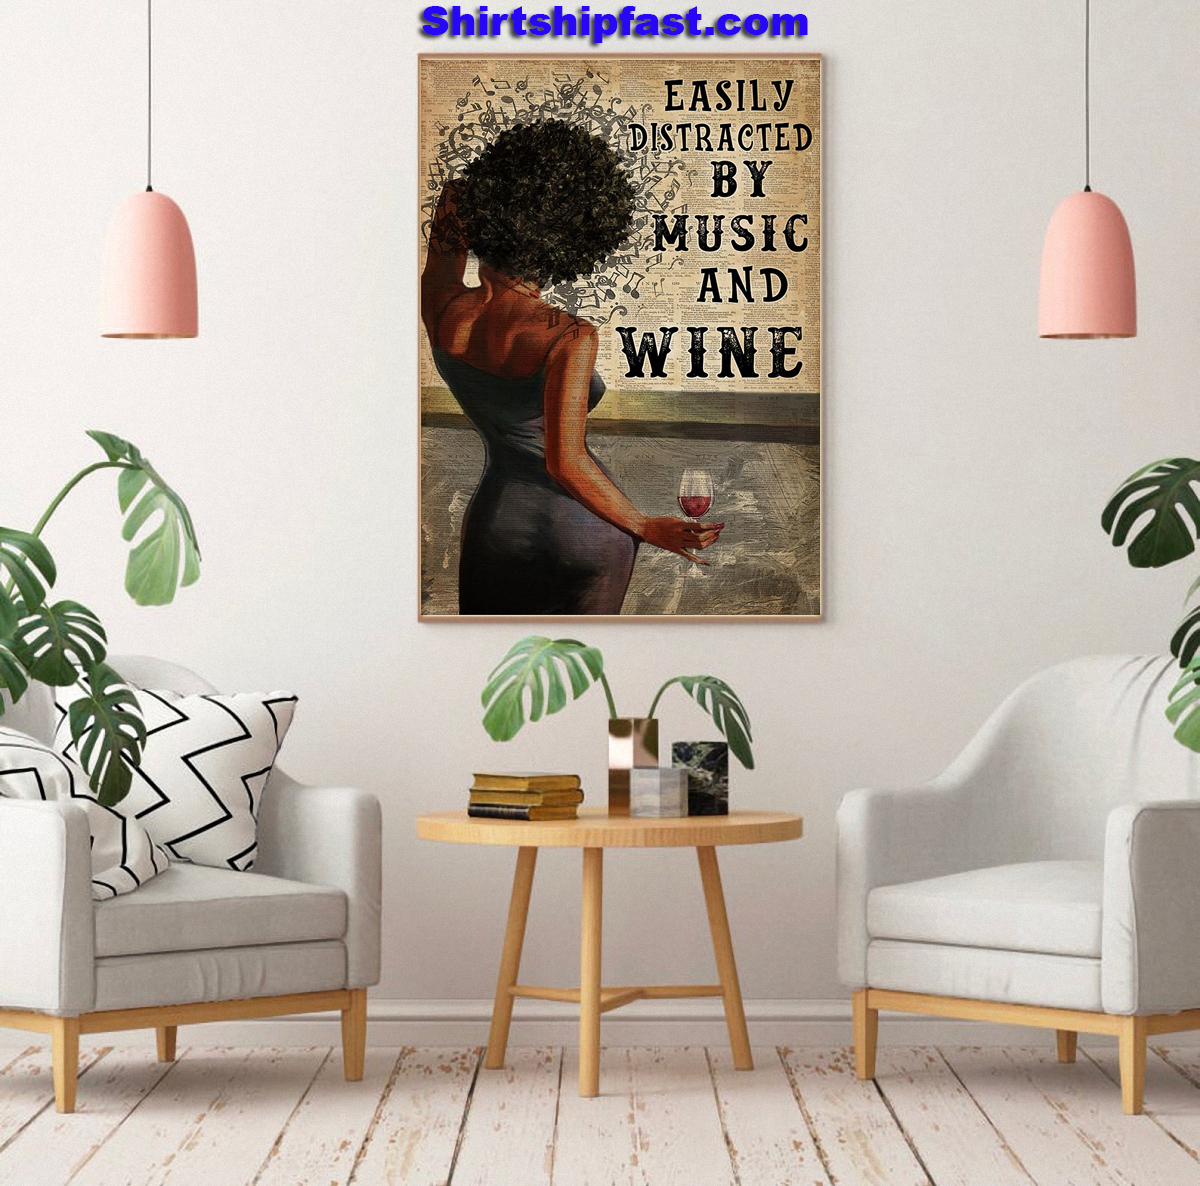 Black Woman easily distracted by music and wine canvas - Picture 1